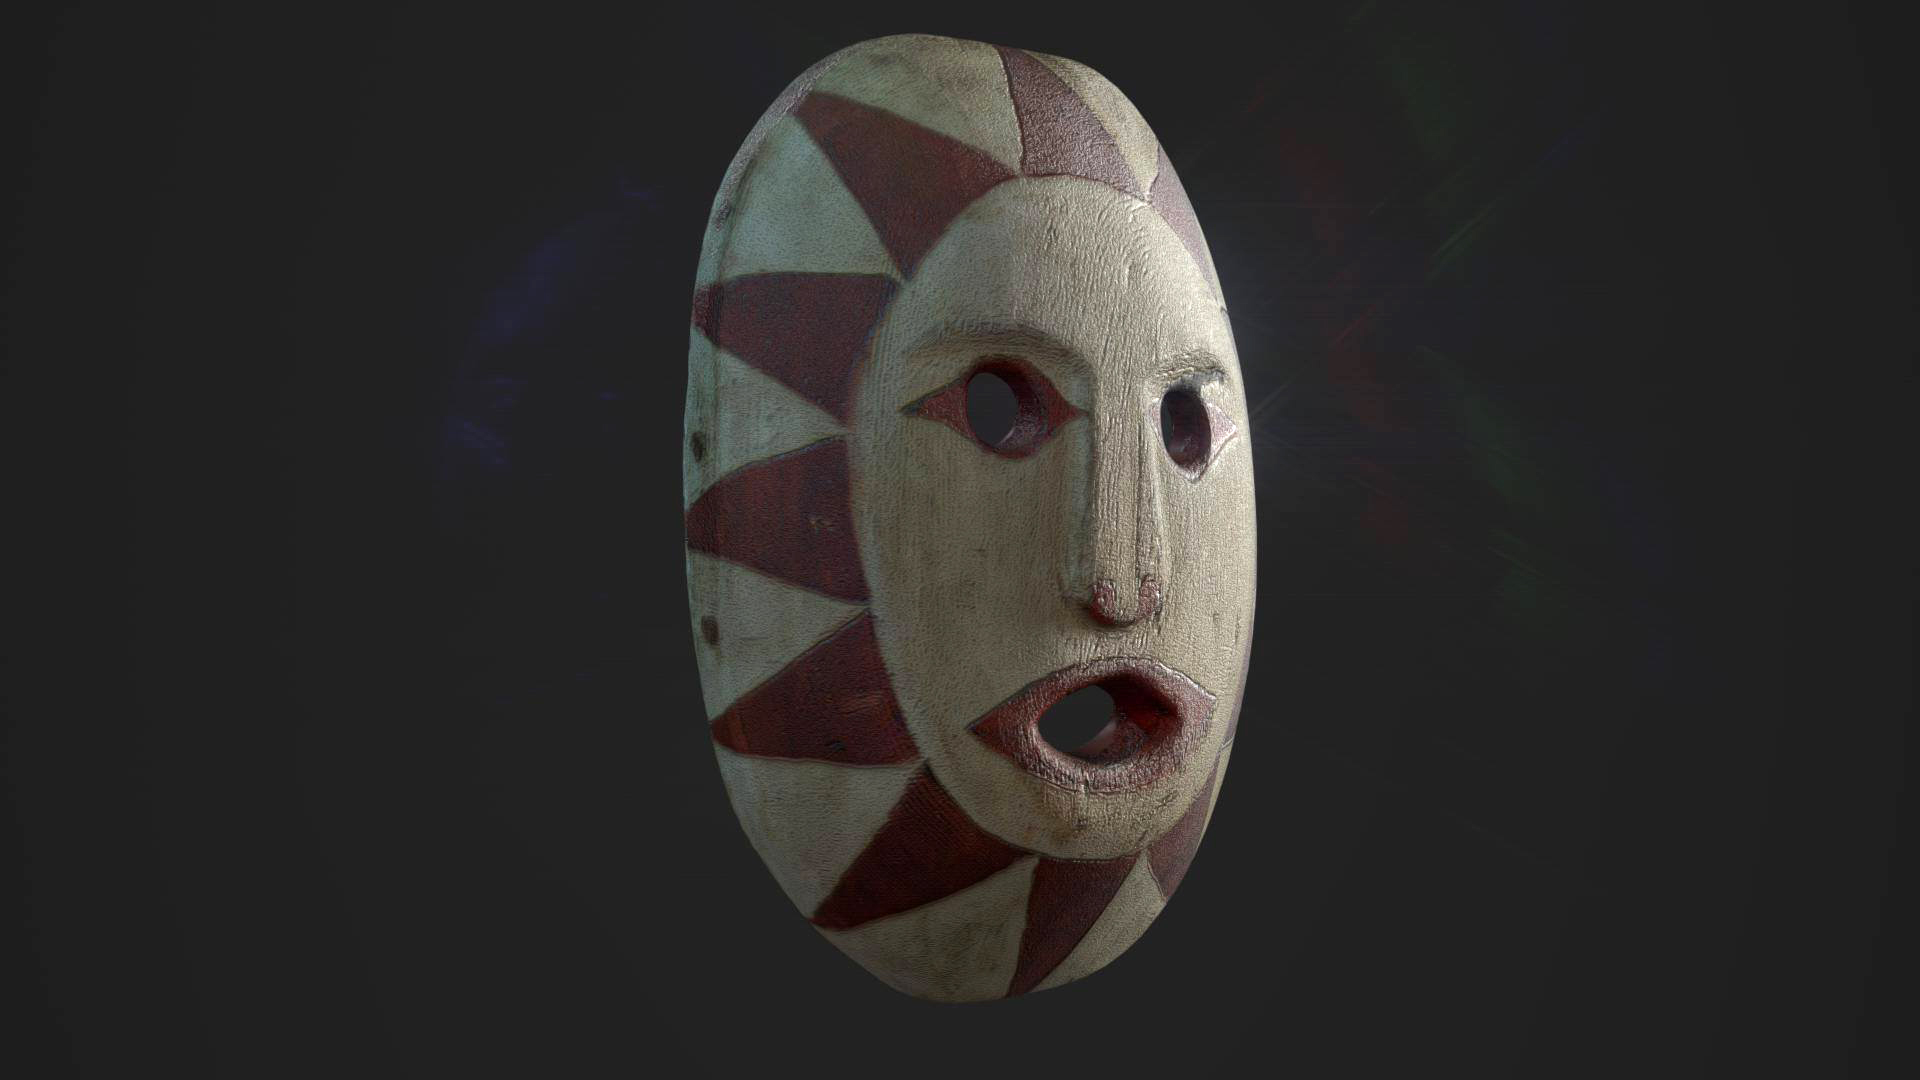 Mask by August Jack Khahtsahlano - IRay Render 1